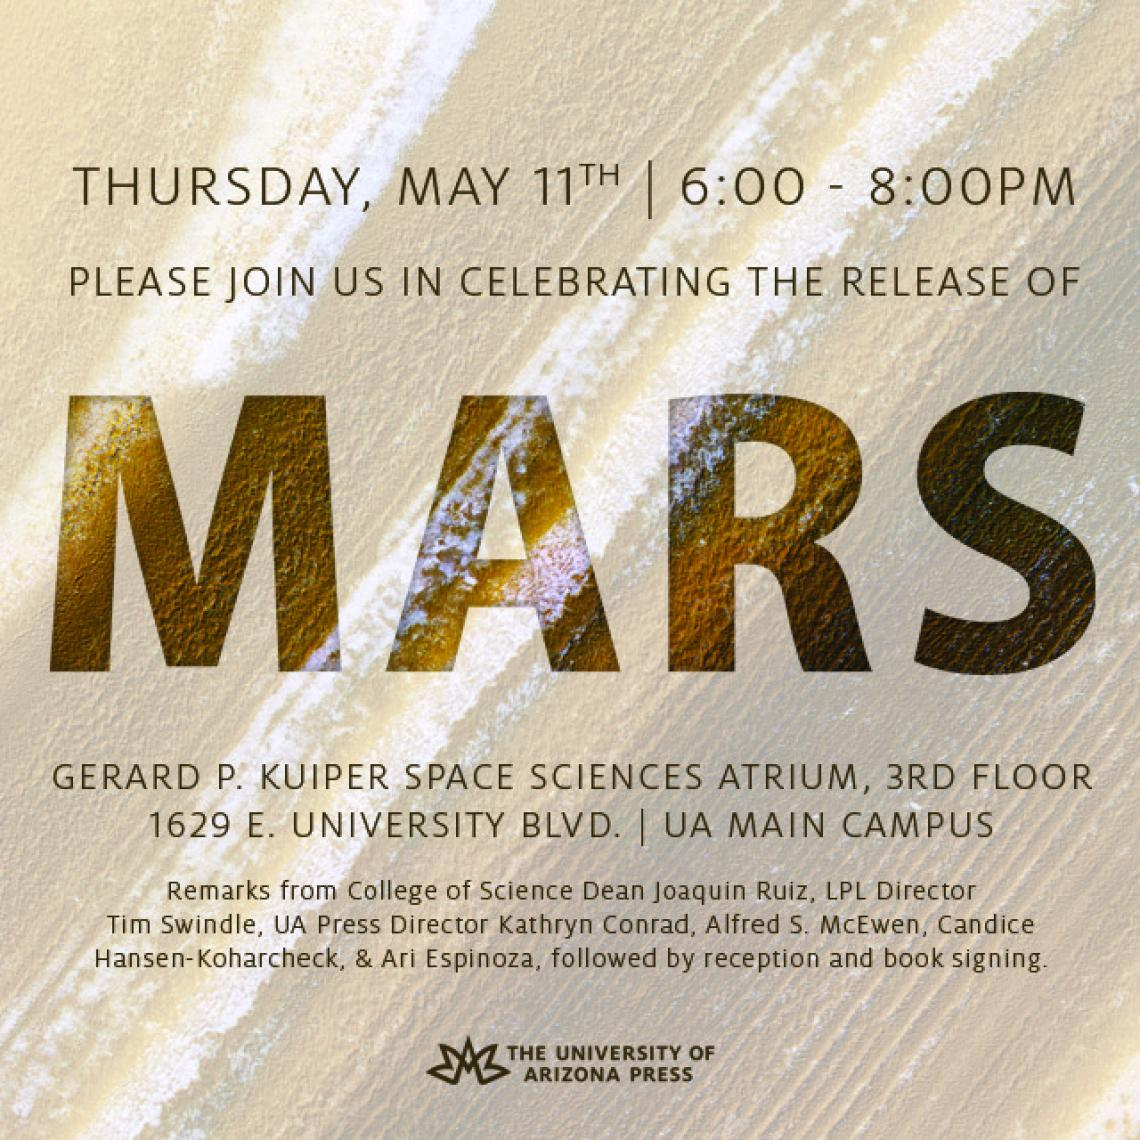 Celebrating the release of the book MARS